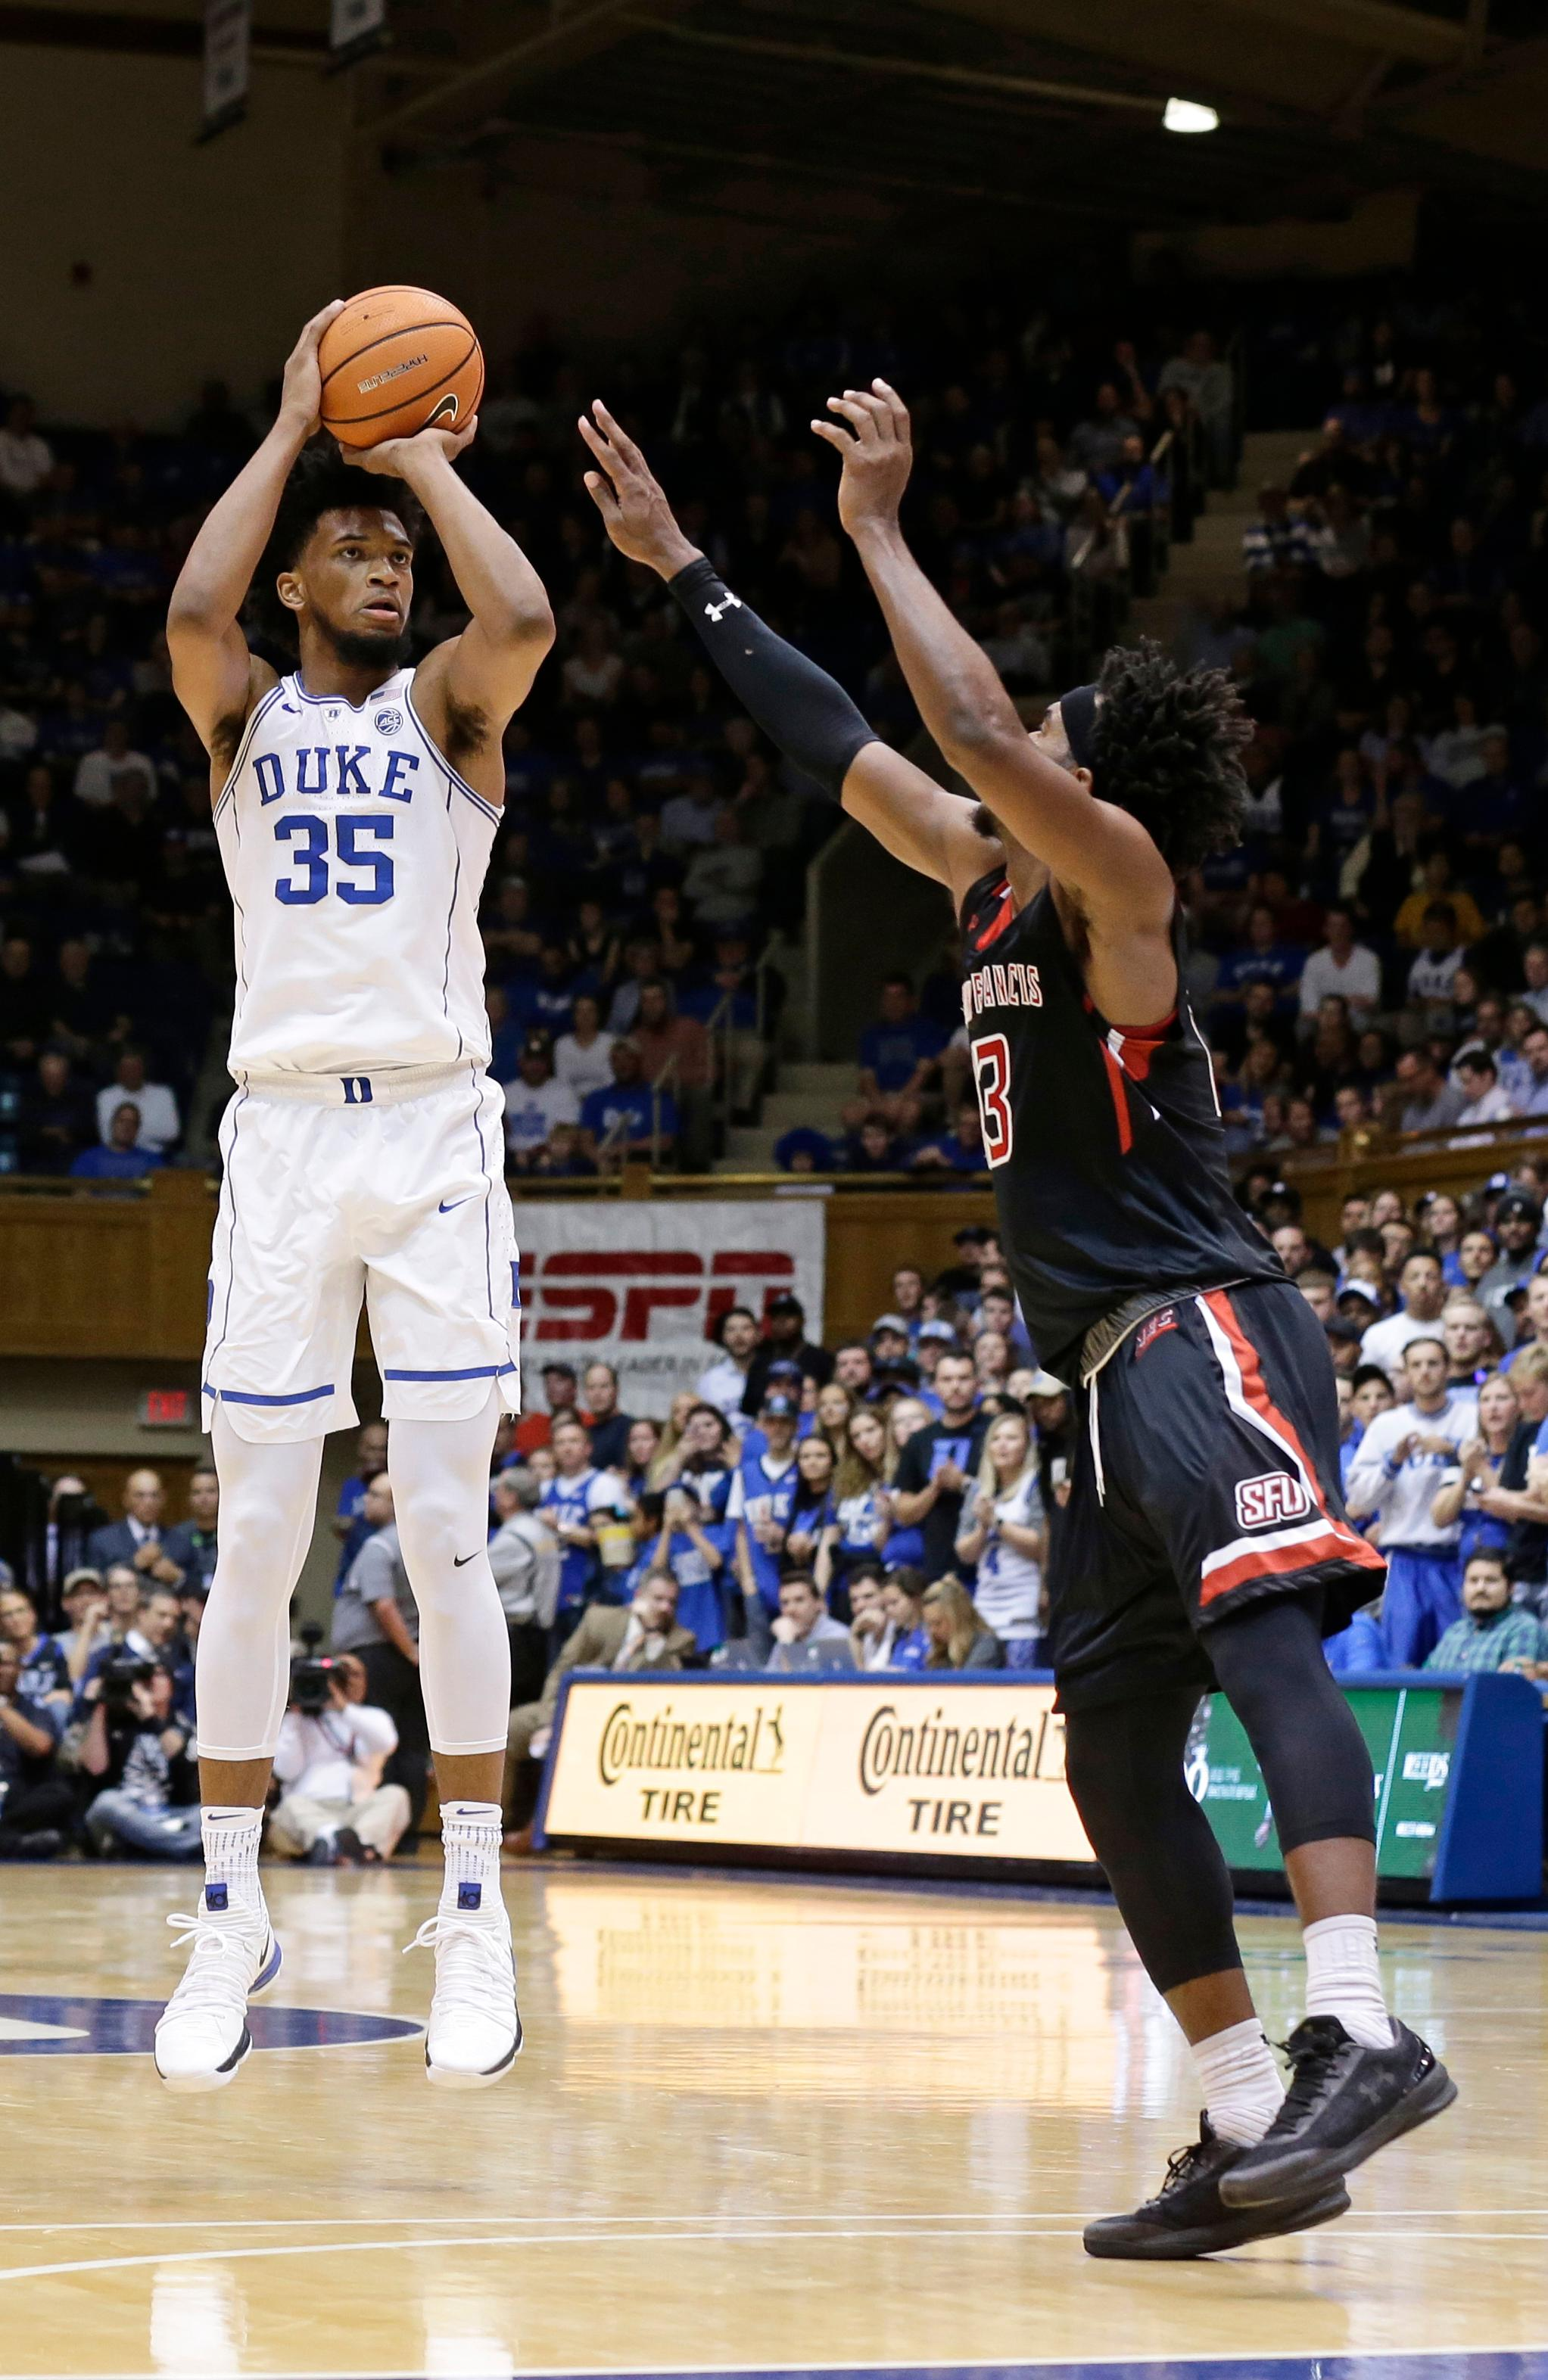 File- This Dec. 5, 2017, file photo shows Duke's Marvin Bagley III (35) shooting while Saint Francis' Keith Braxton (13) defends during the first half of an NCAA college basketball game in Durham, N.C. Duke coach Mike Krzyzewski isn't interested in thinking about how his latest group compares to his past teams. Regardless, this year's team, led by senior Grayson Allen and top-tier freshman Bagley, sure looks like a squad set to win another Atlantic Coast Conference championship for its Hall of Fame coach as the bulk of league play arrives this weekend.  (AP Photo/Gerry Broome, File)